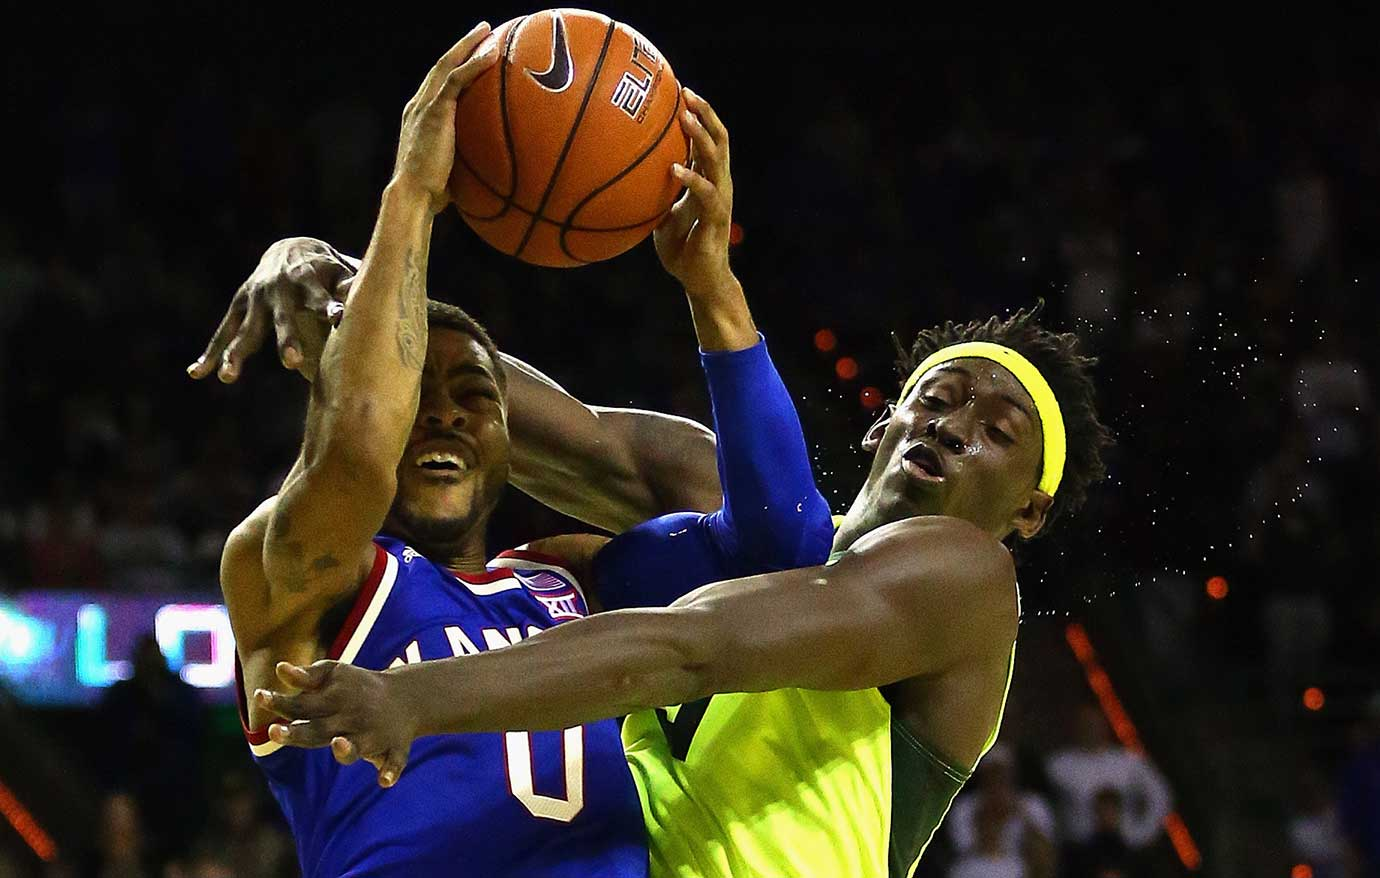 Here are some of the images that caught our eye on the sports night of Feb. 23, beginning with Frank Mason III of Kansas knocking the sweat out of Johnathan Motley of Baylor.